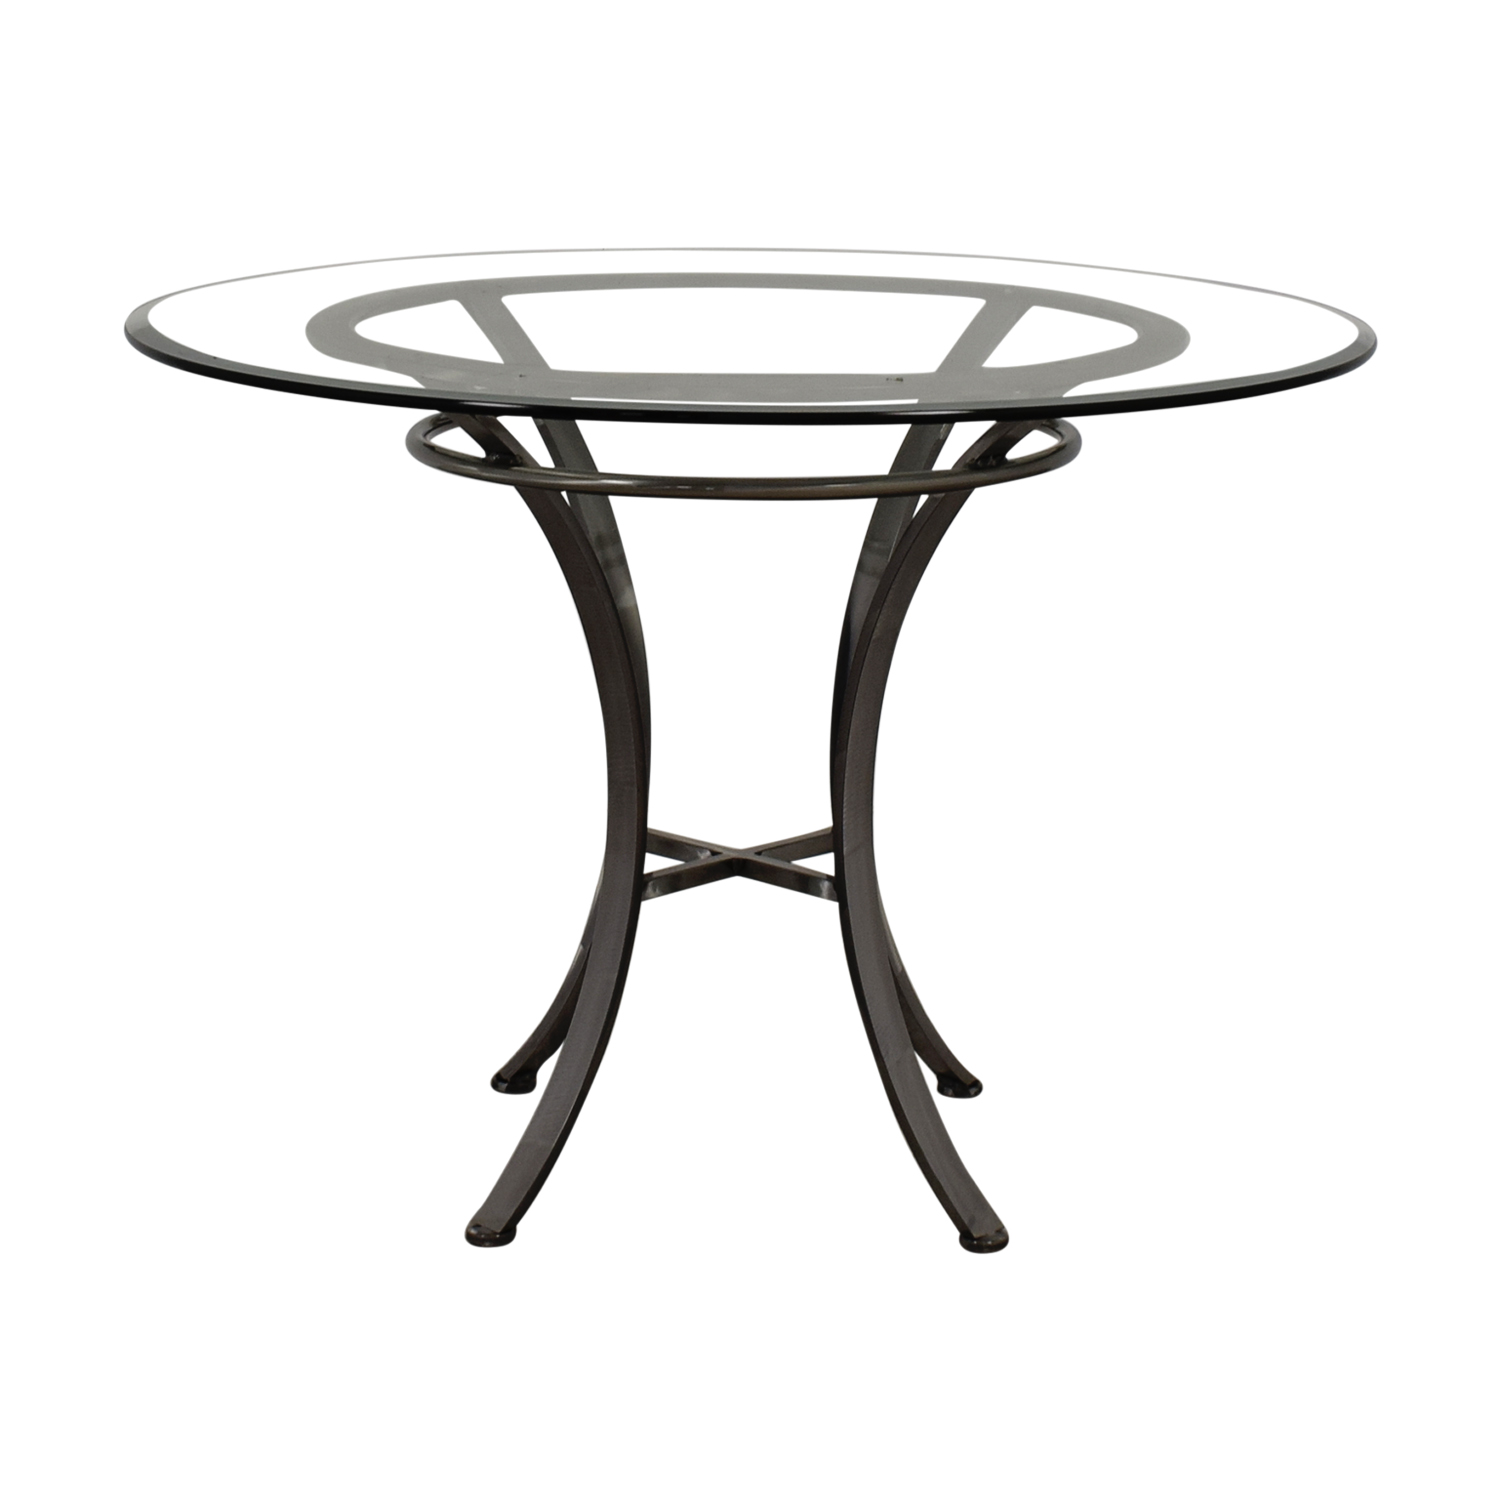 Johnston Casuals Johnston Casuals Glass and Pewter Table nj